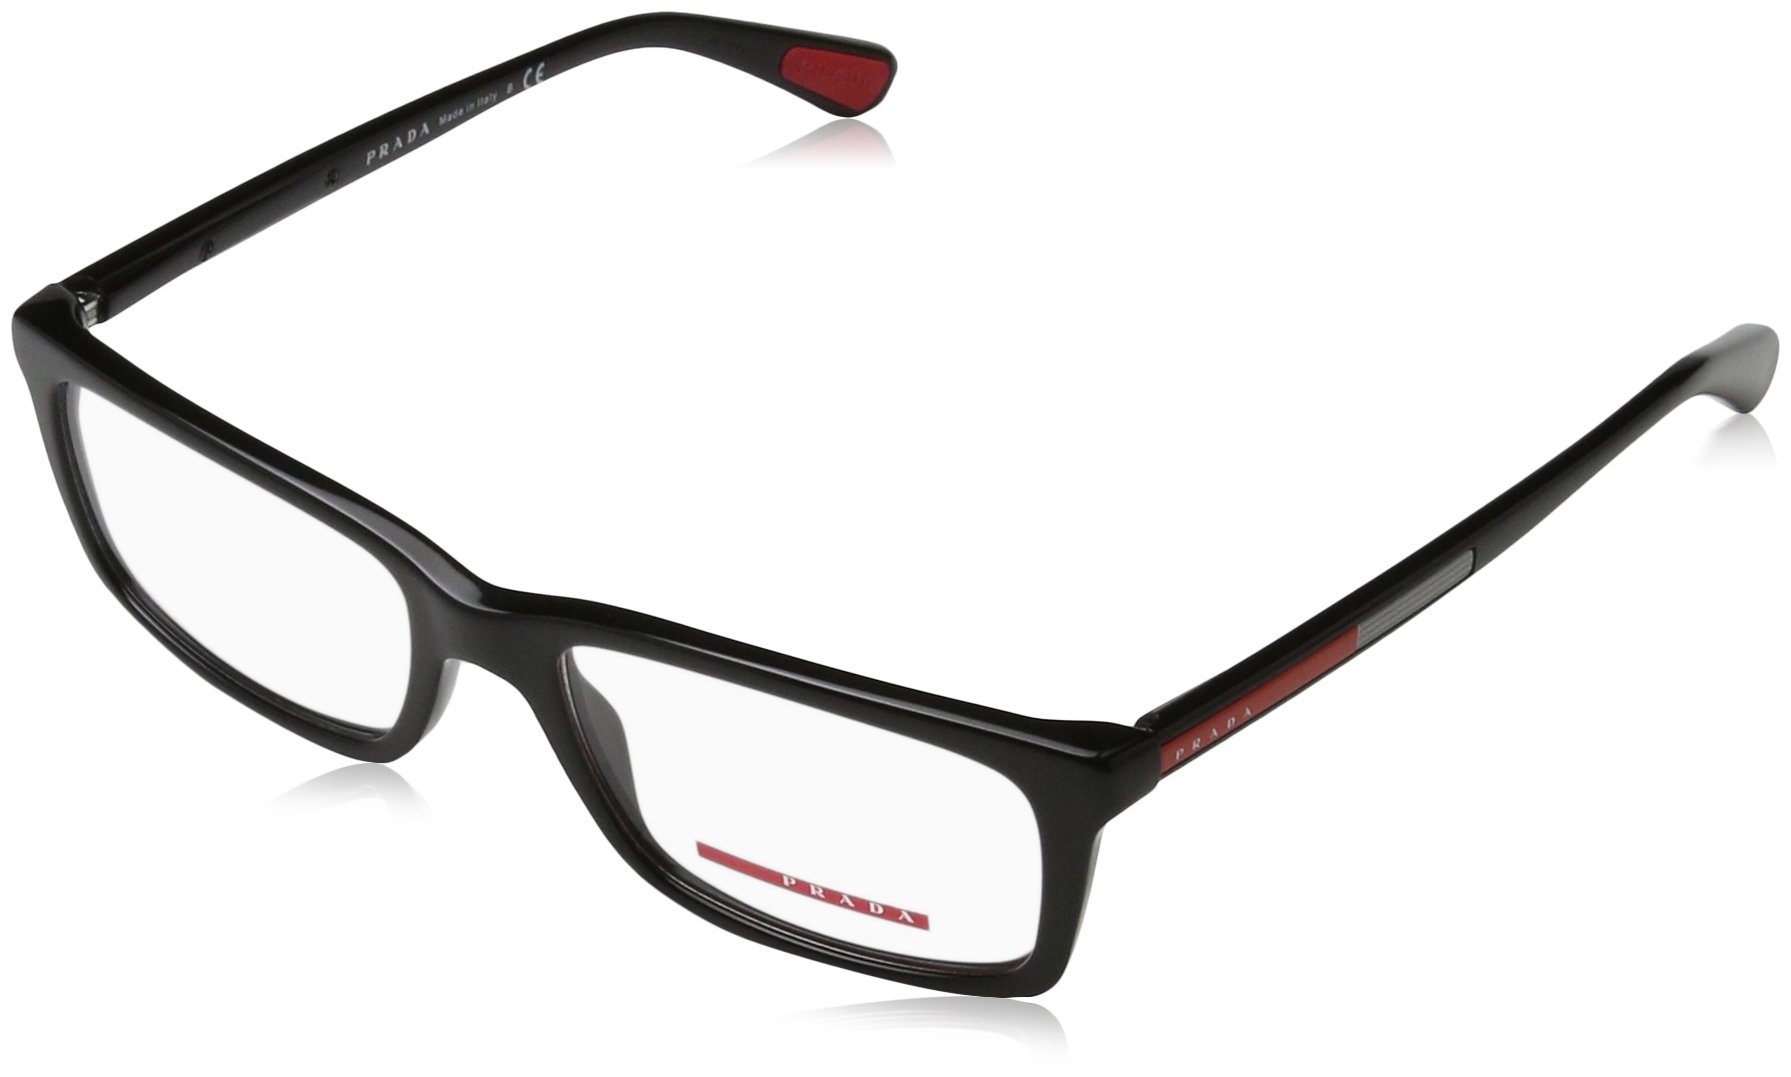 Prada PS02CV 1AB1O1 Men's Eyeglasses Black 53mm by Prada